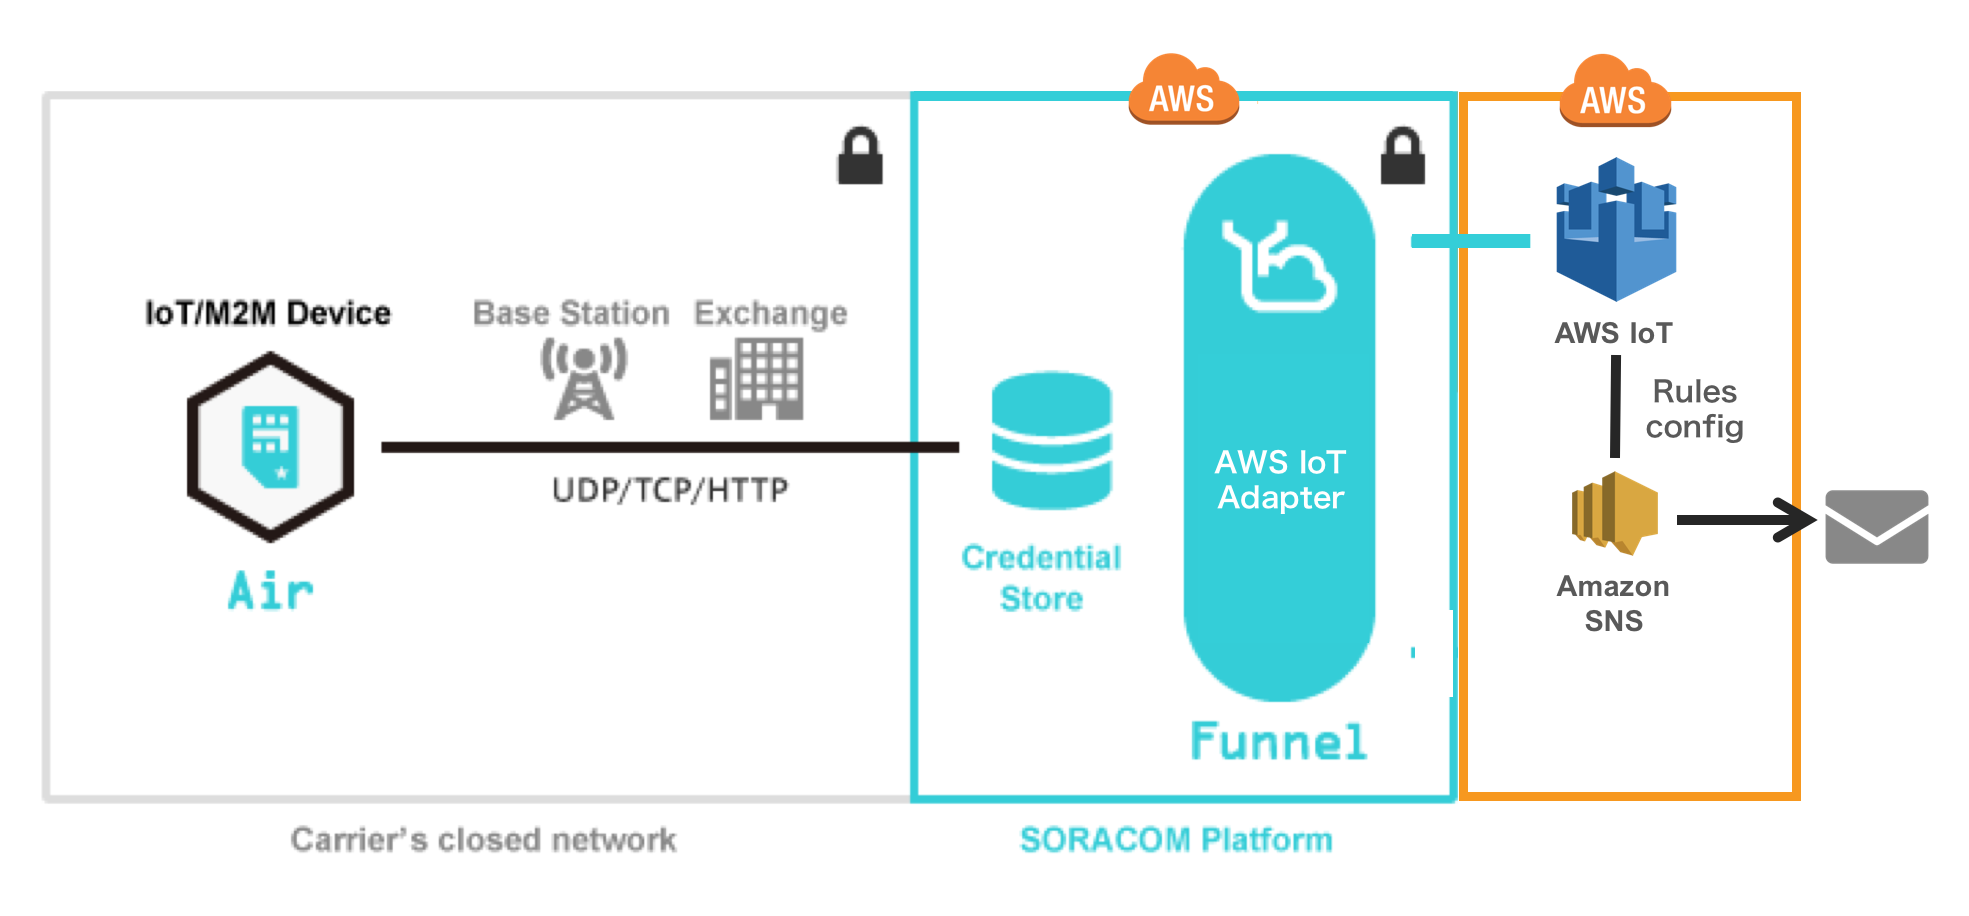 Send data using SORACOM Funnel AWS IoT adapter | Getting Started